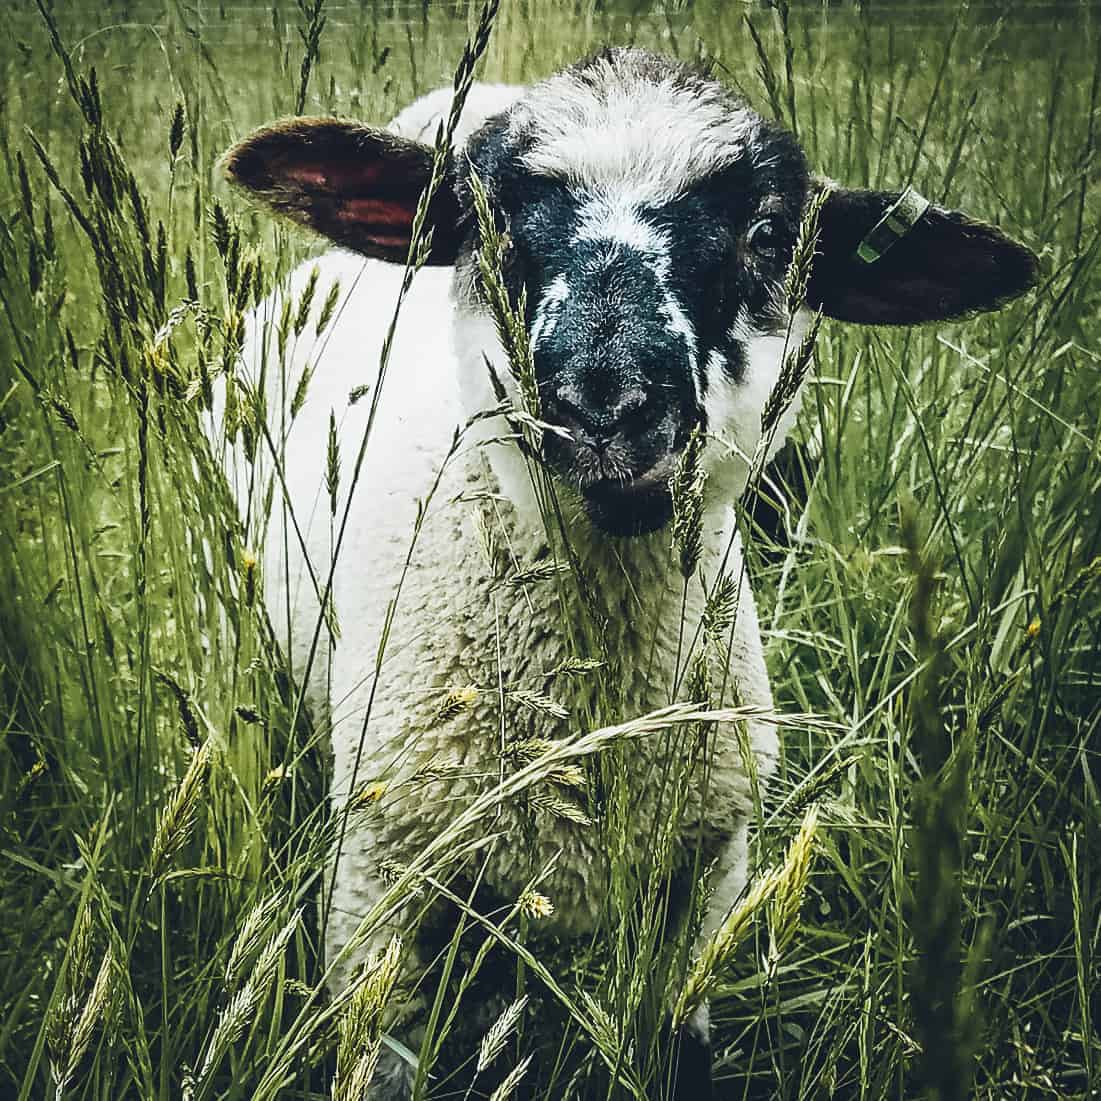 A black and white lamb in tall grass.